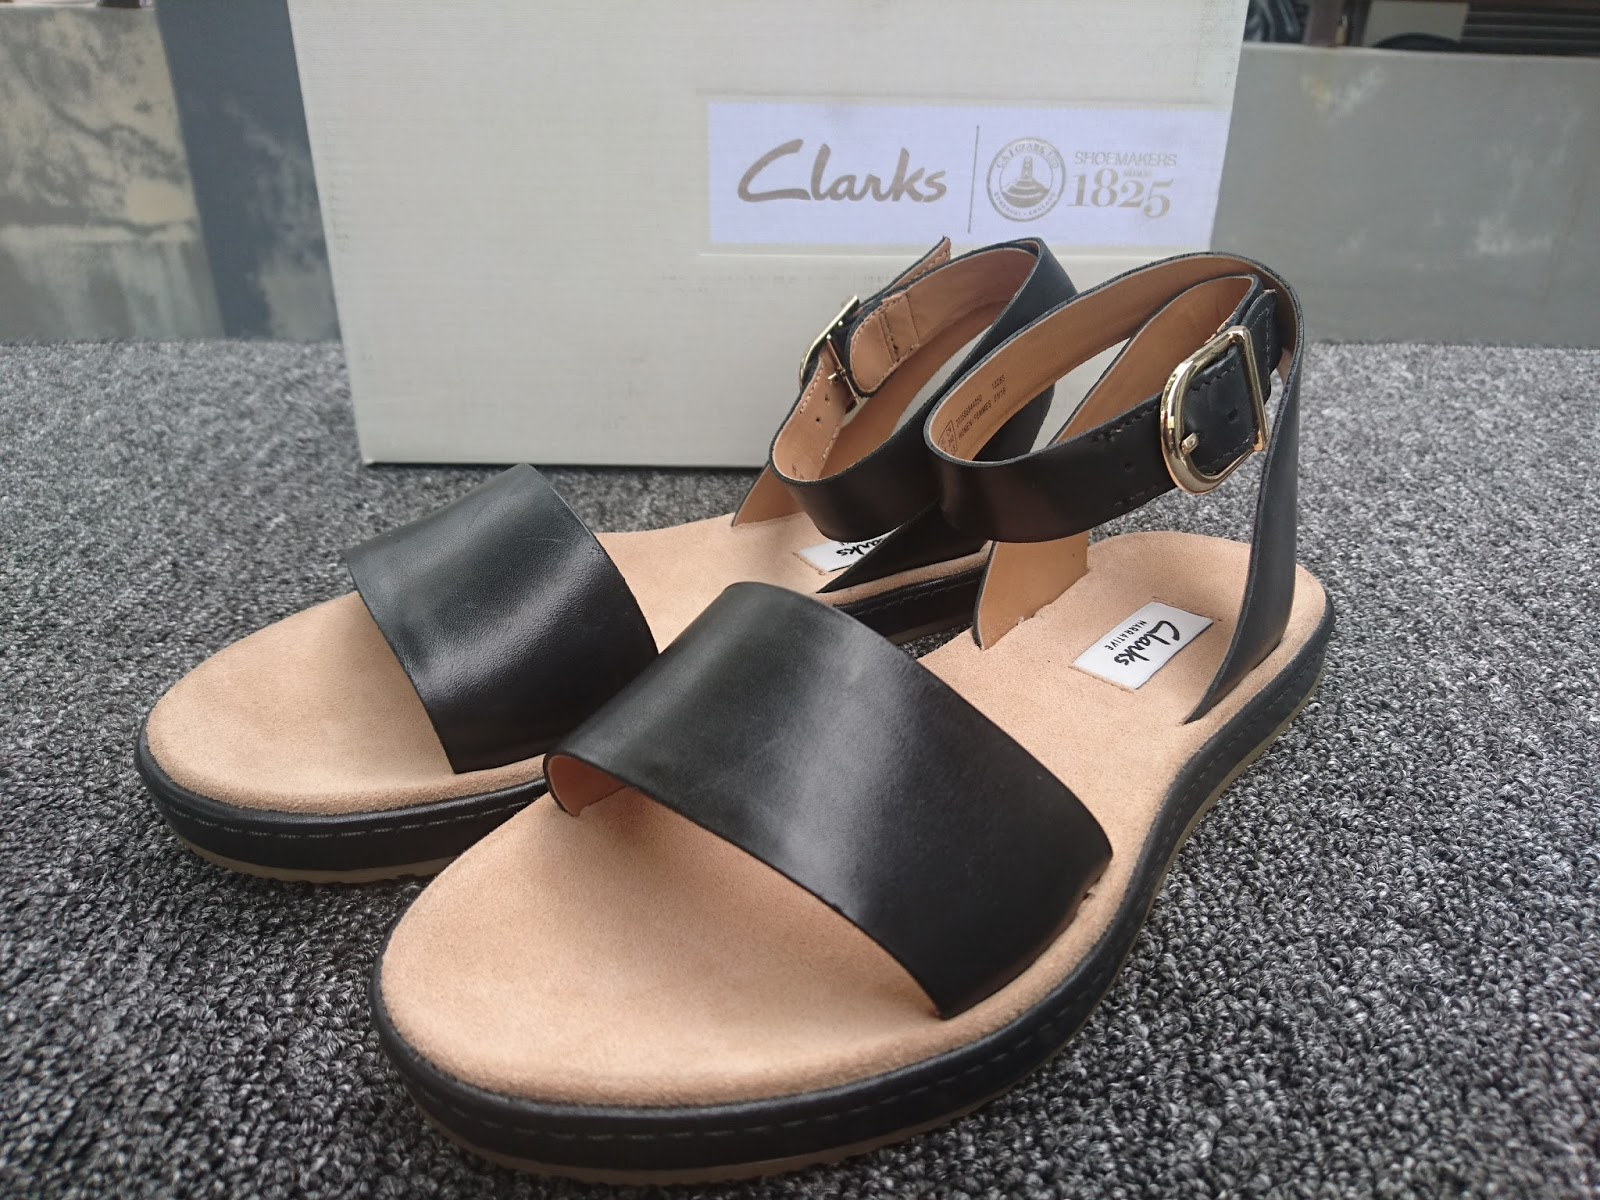 be183cc9c5d Clarks Style  Romantic Moon Collection  Narritive 100% Authentic Brand new  in box Full leather Black colour Ankle strap flat sandals Elasticated  buckle ...